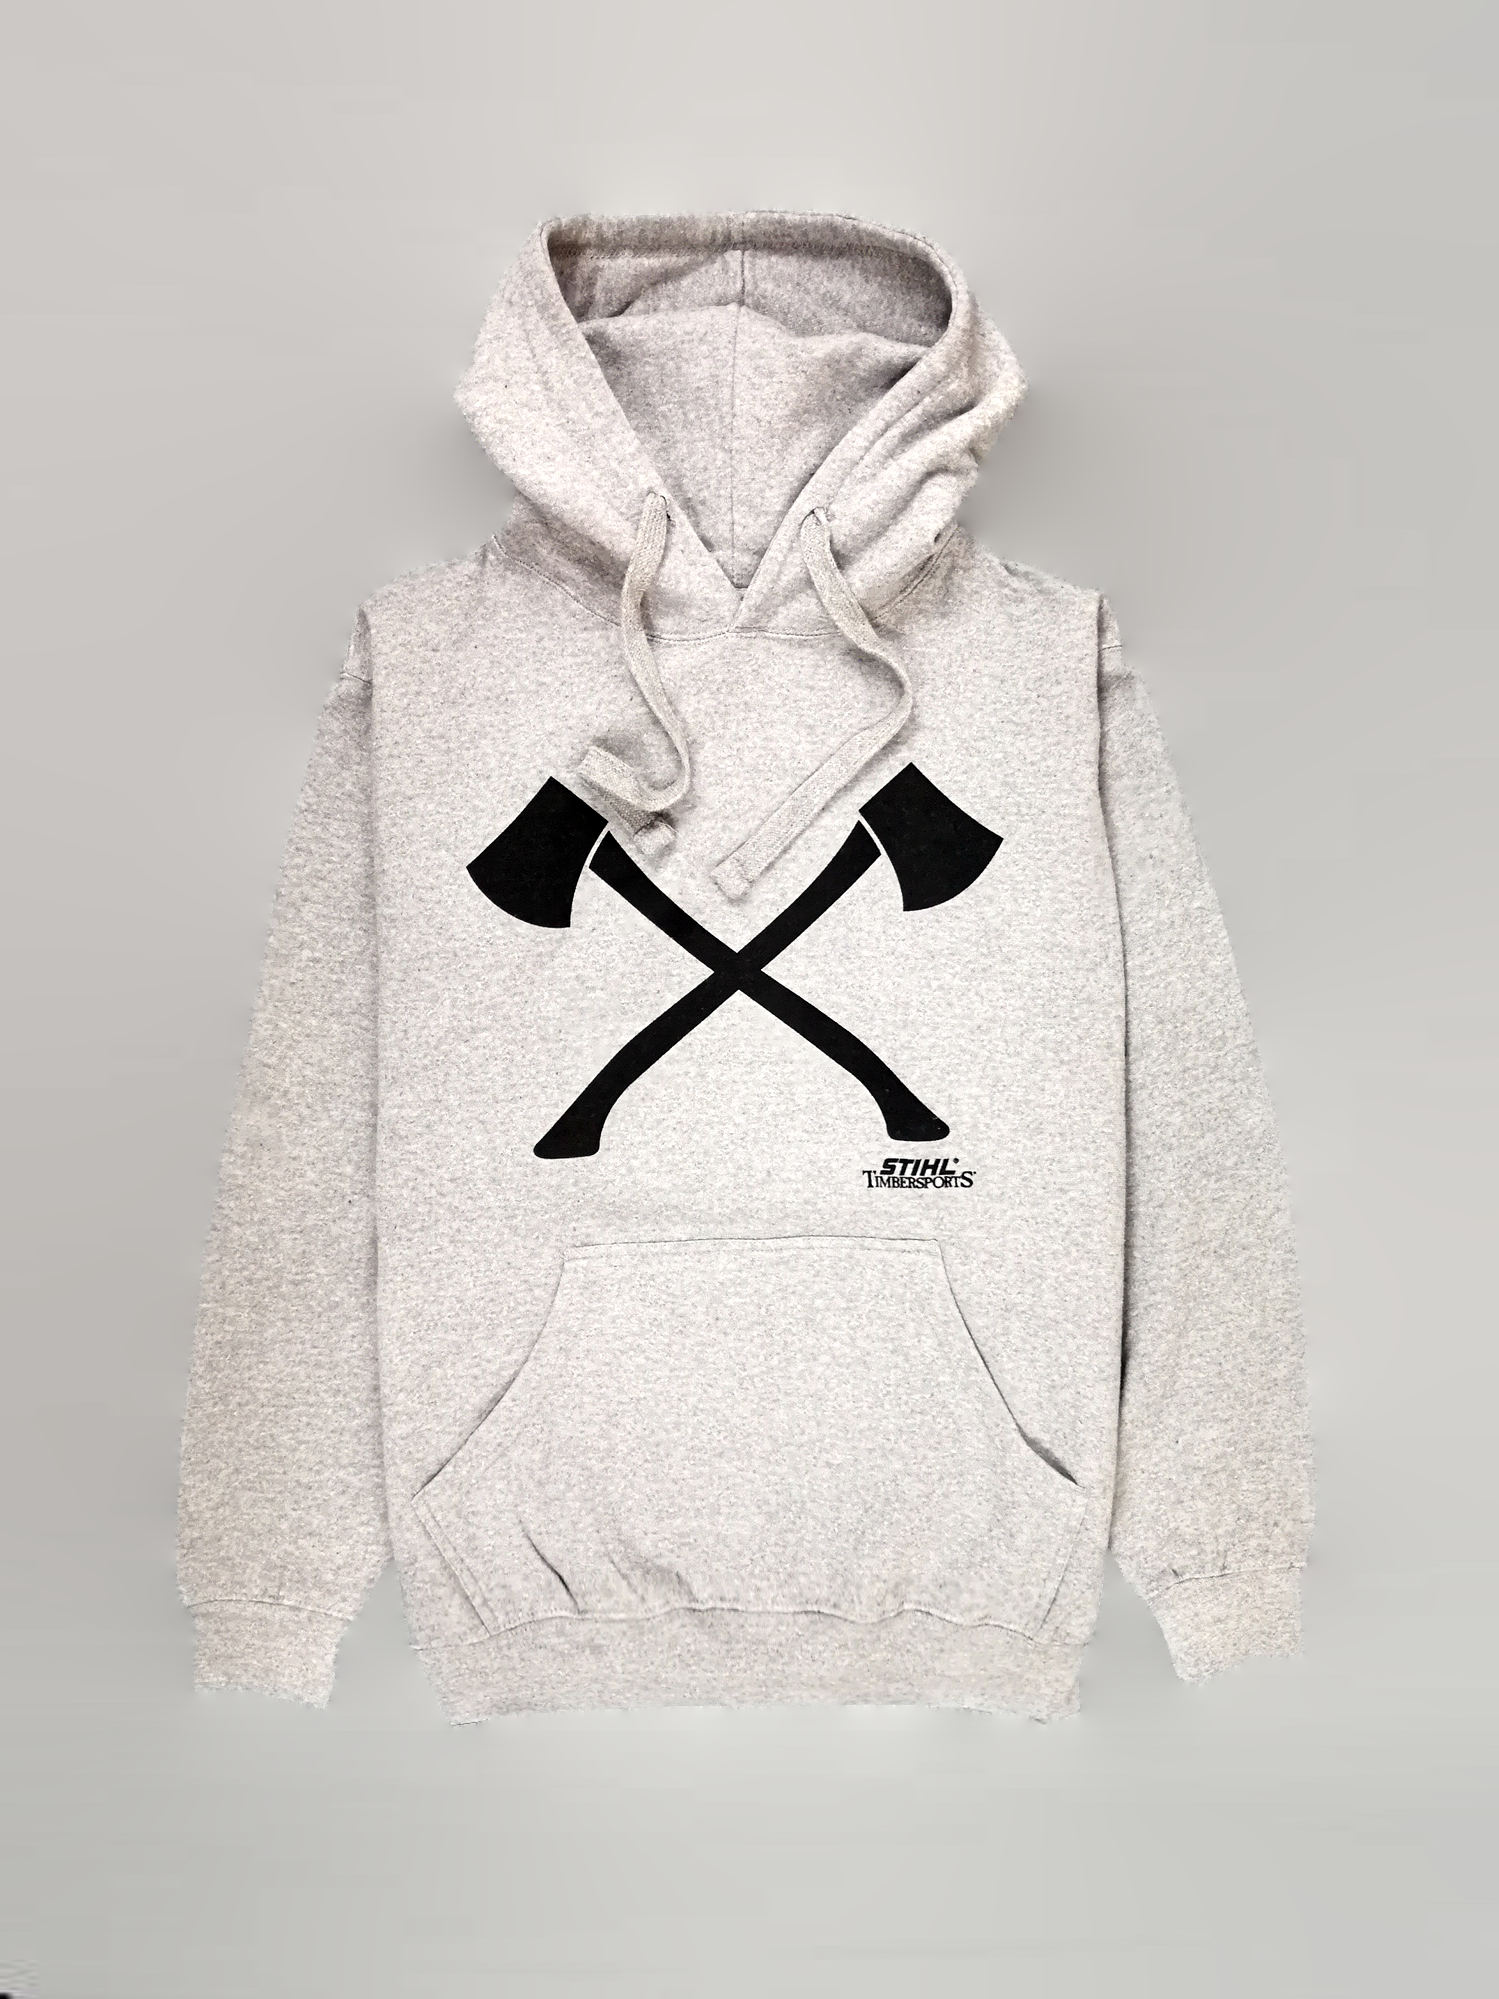 STIHL TIMBERSPORTS AXE Hooded Sweatshirt